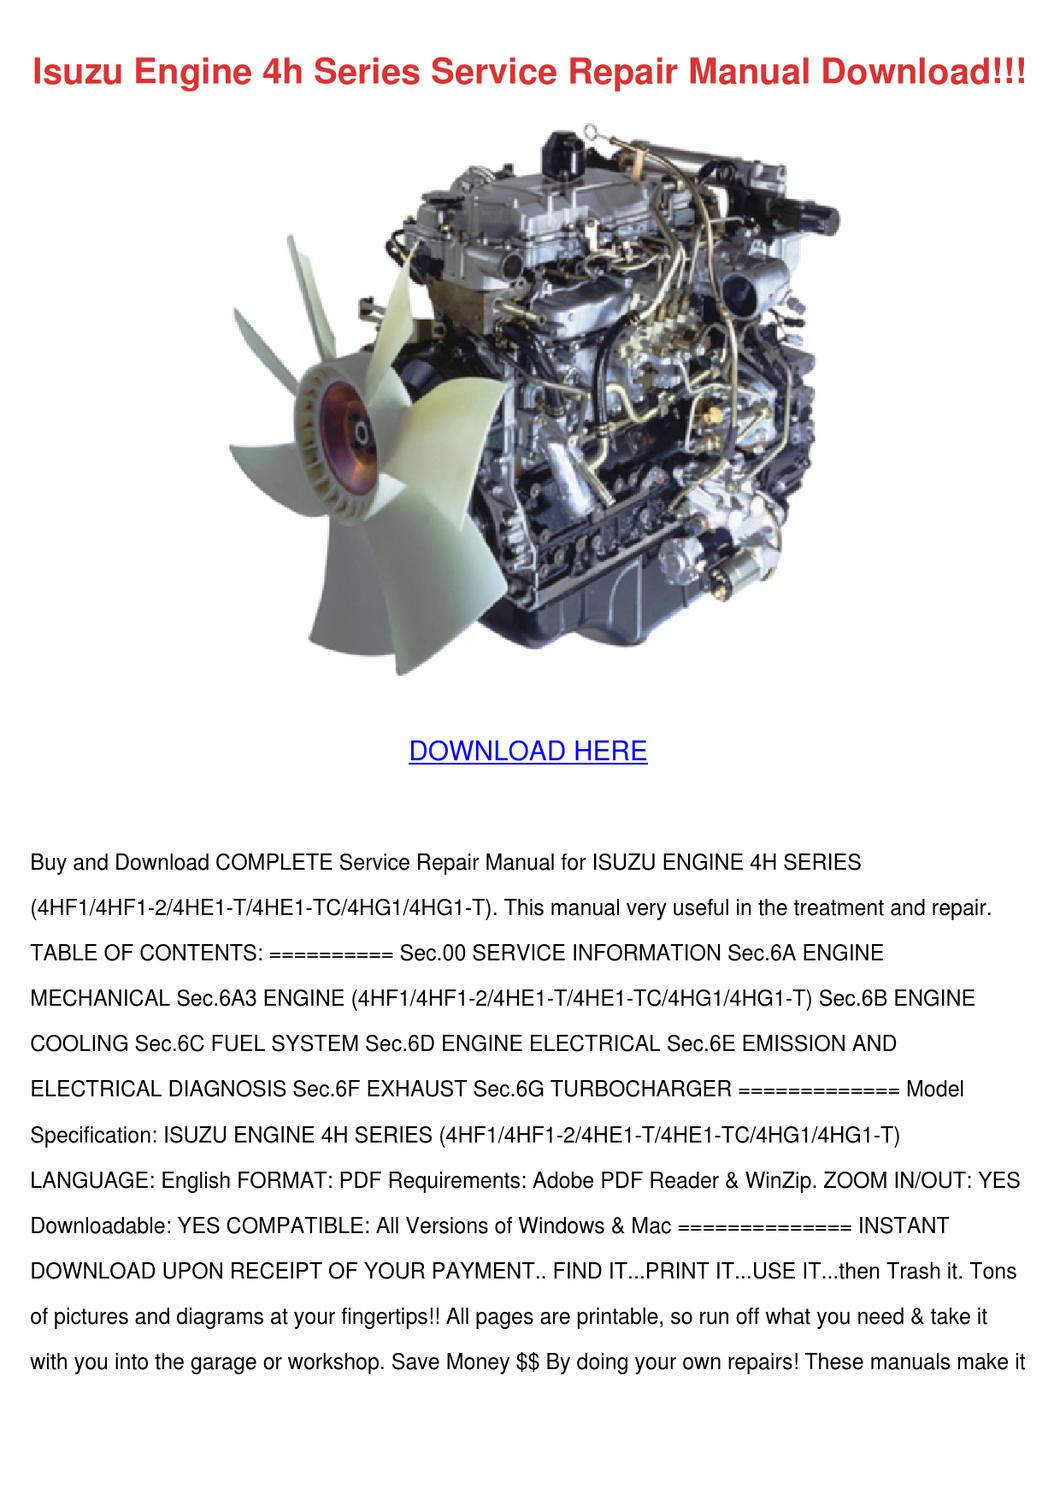 isuzu engine 4h series service repair manual by shonta wede issuu